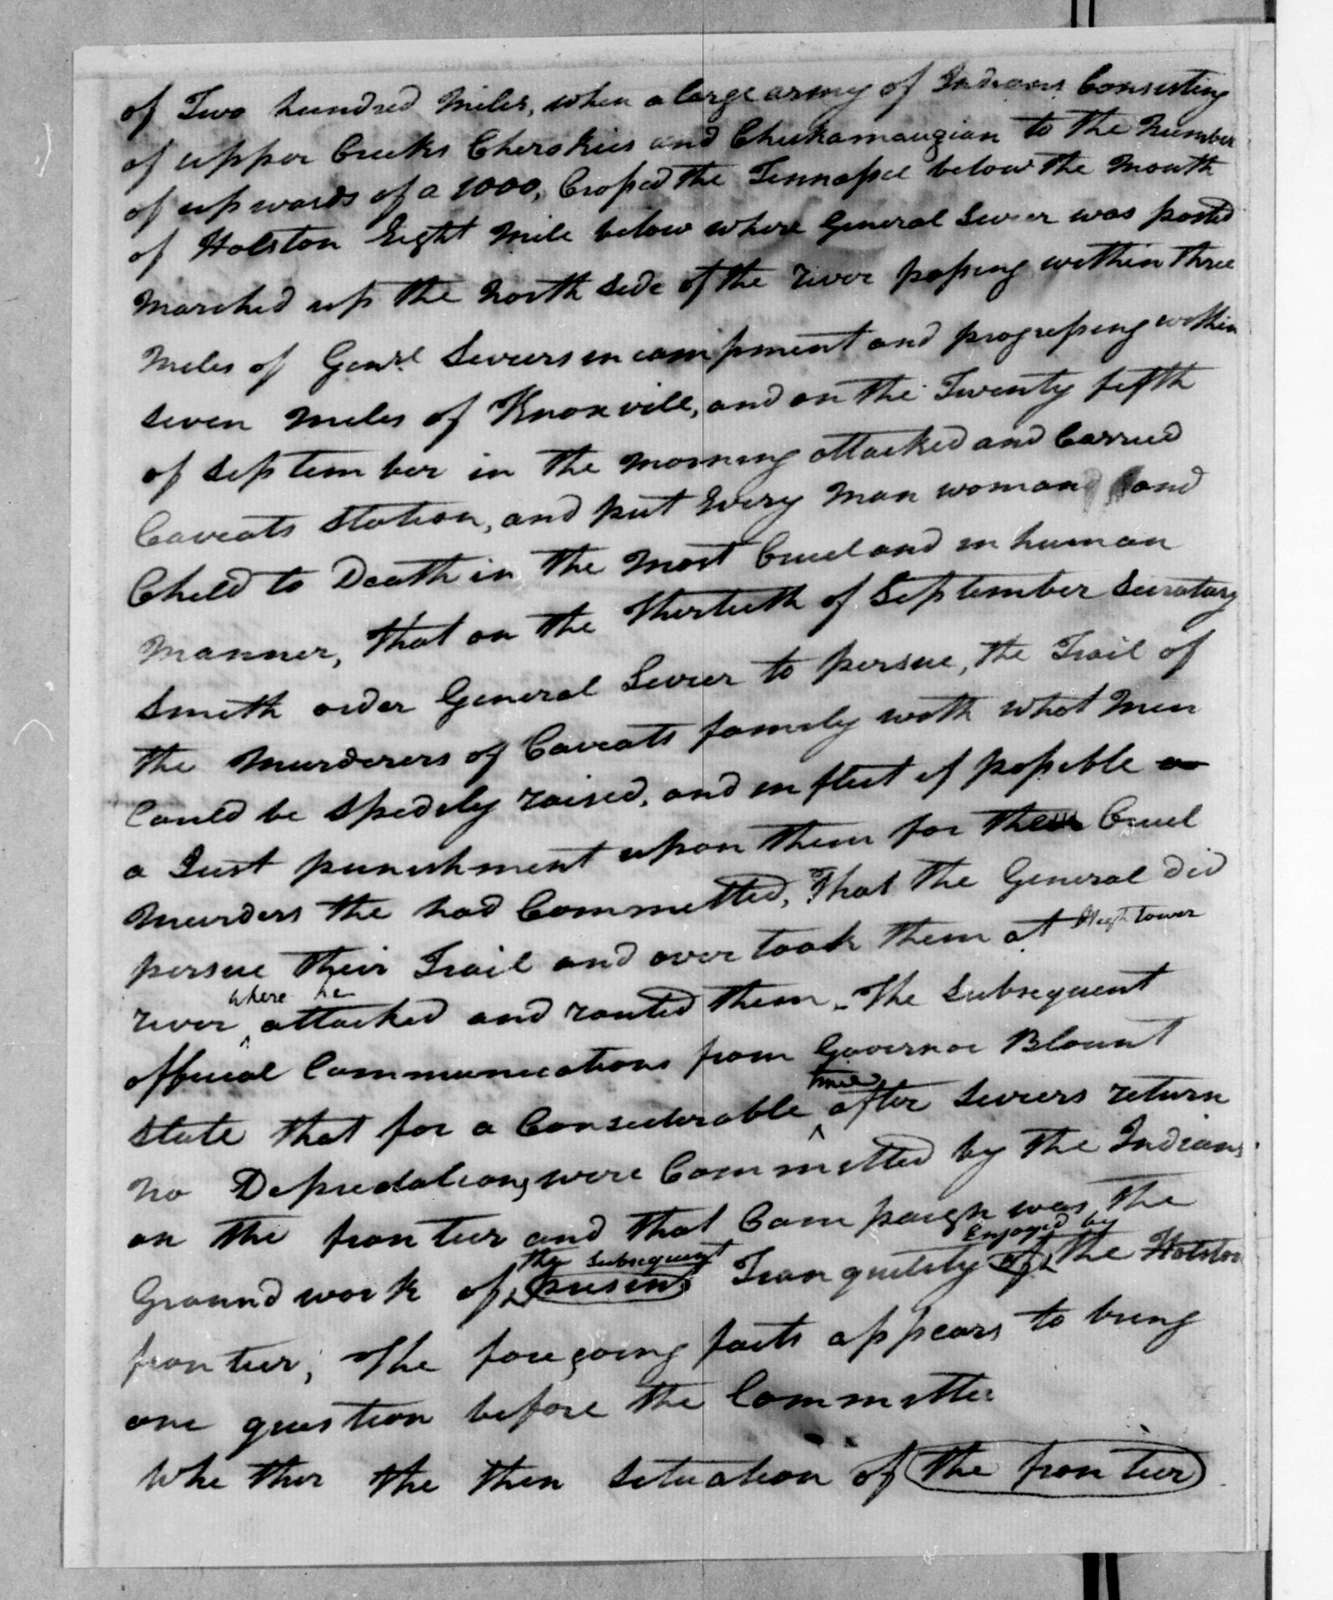 Congressional Committee, February 14, 1797